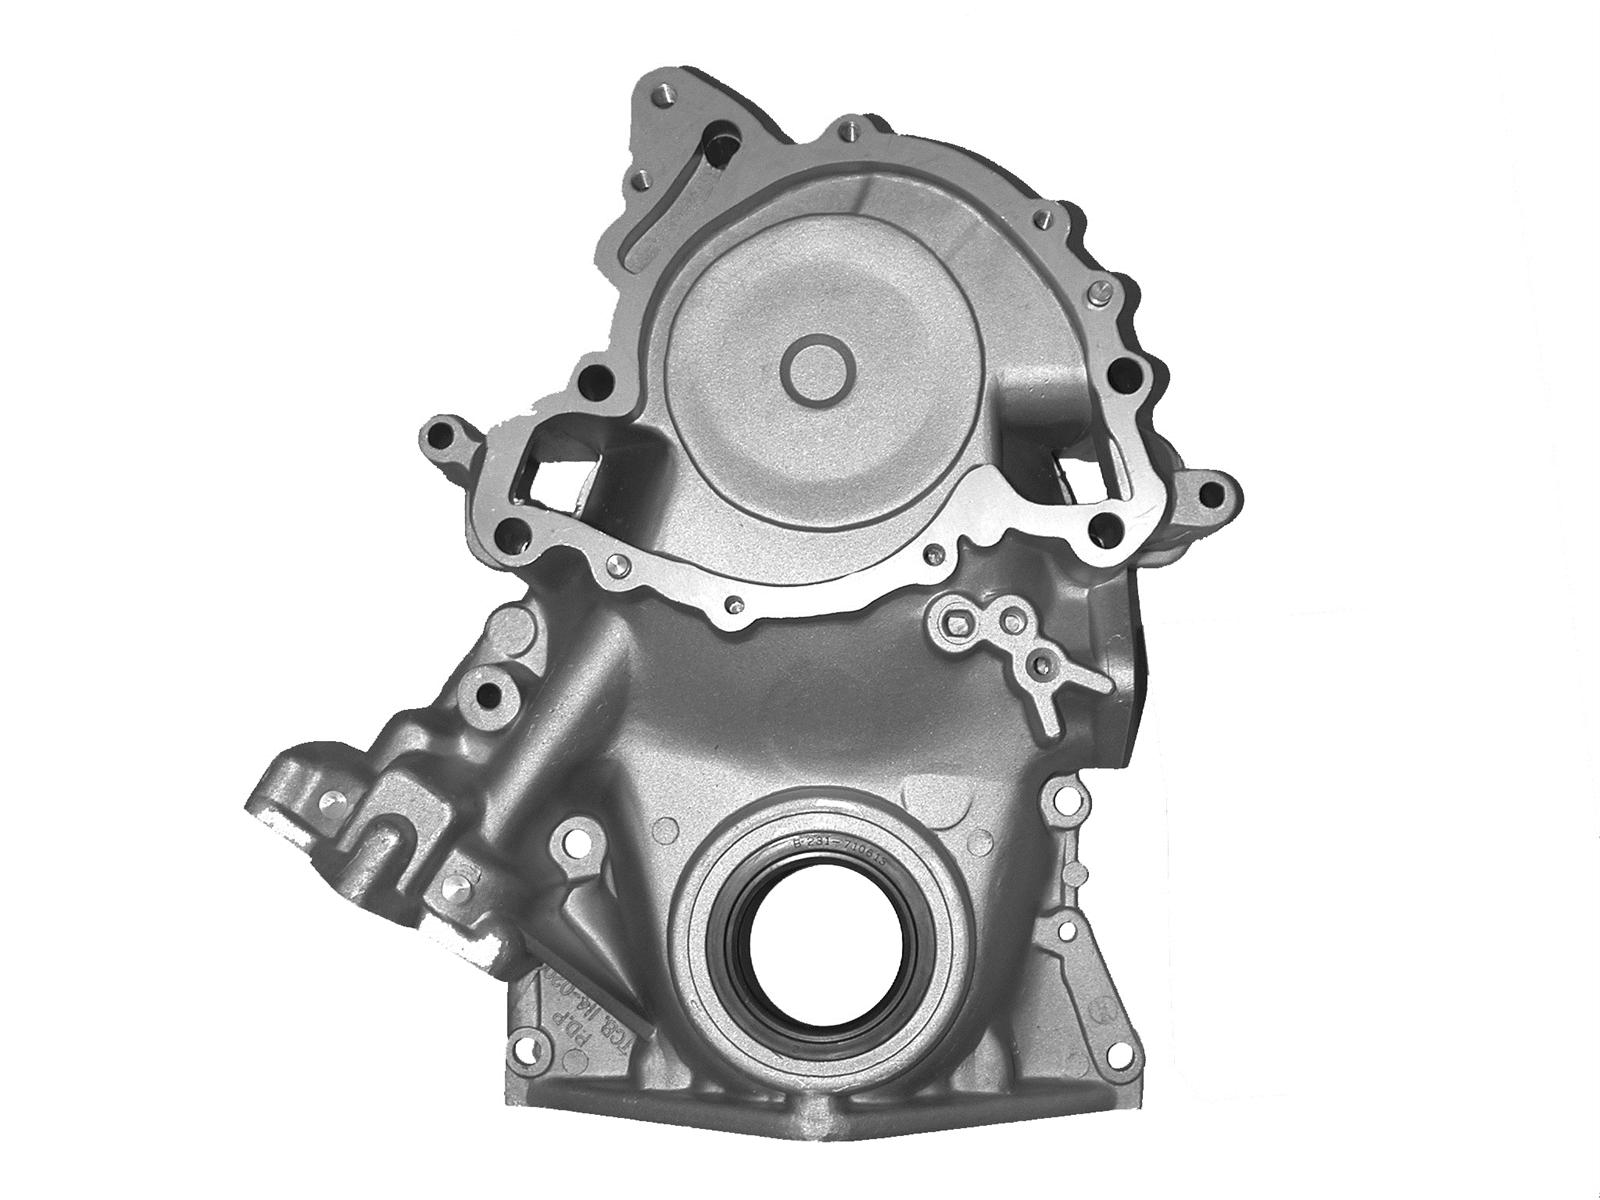 Service manual [Buick Timing Cover Ebay] - Buick Century ...